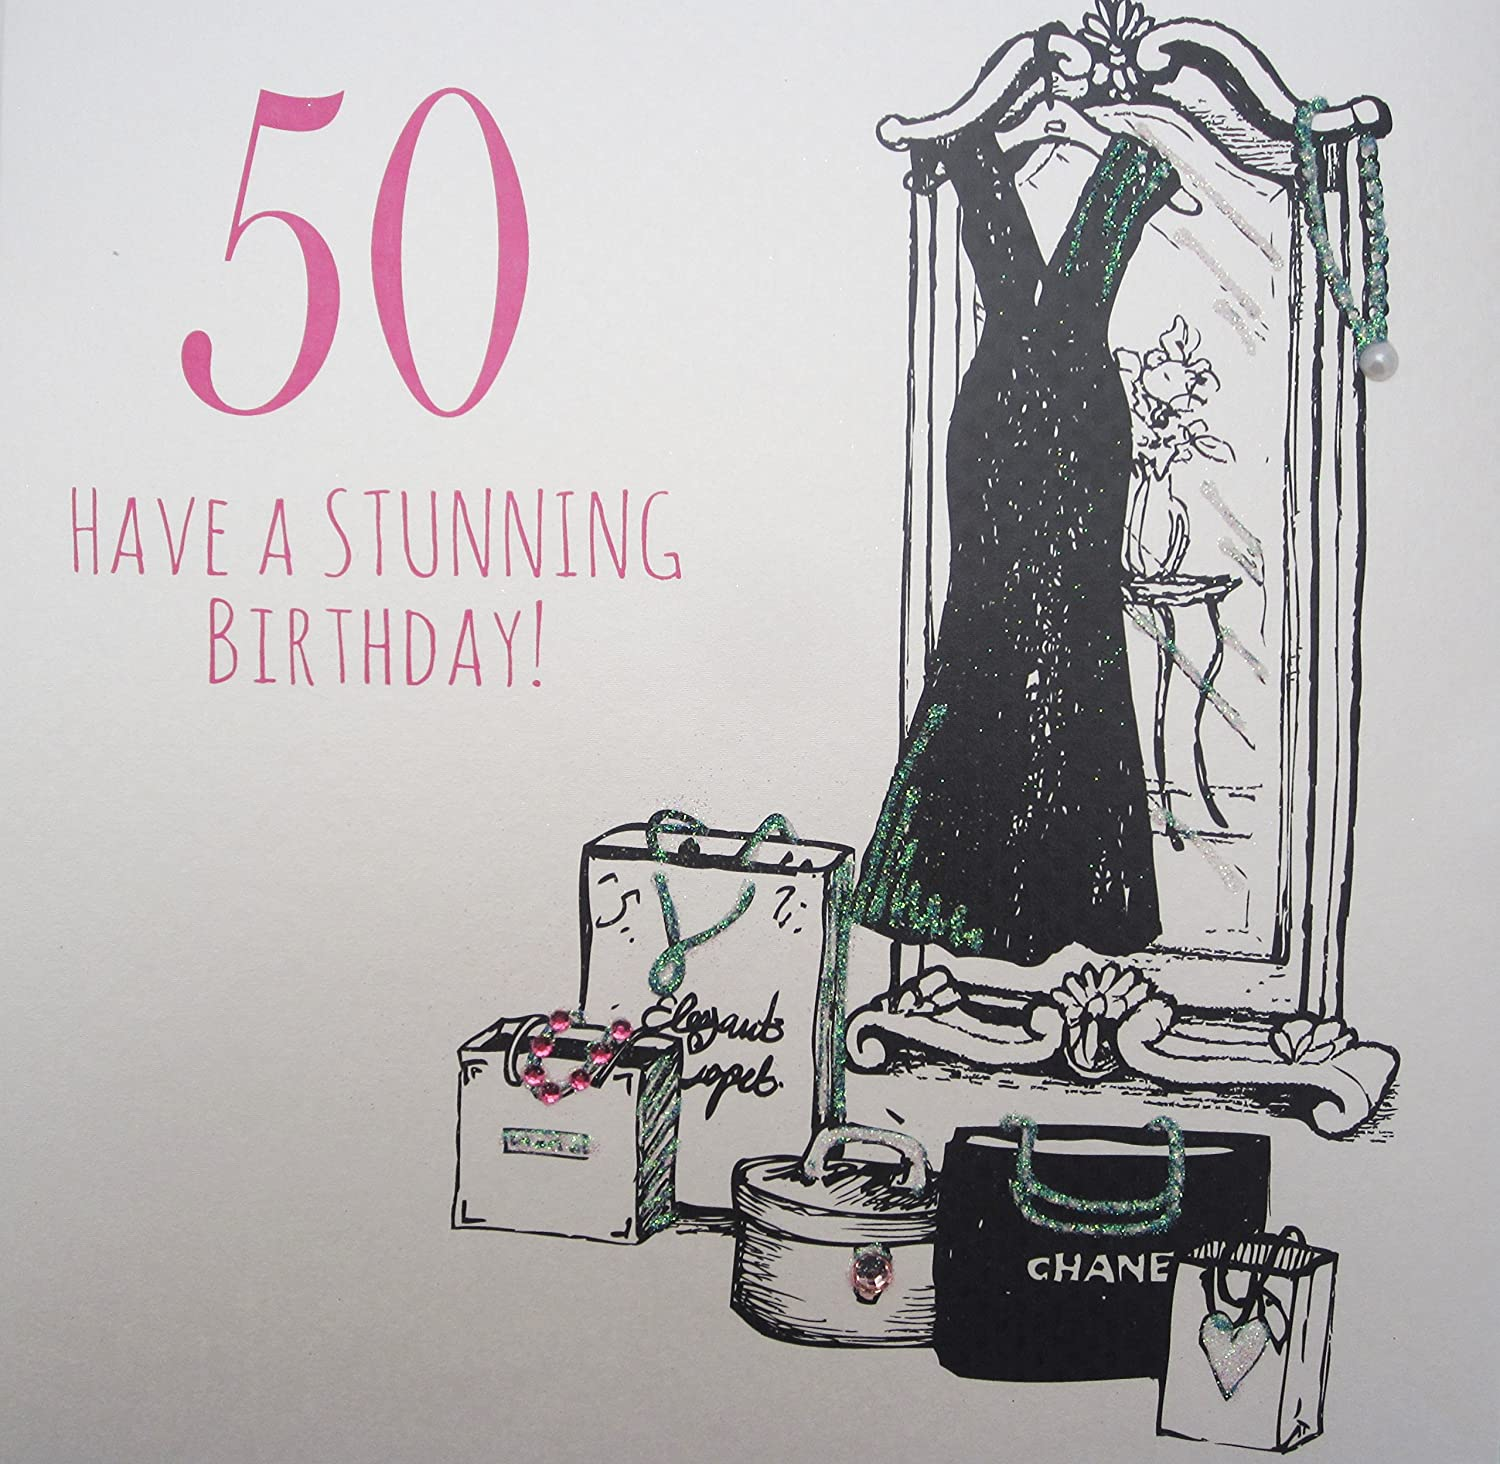 WHITE COTTON CARDS 50 Have A Stunning Hanmade Large 50th Birthday Card Code XEA50 Amazoncouk Kitchen Home